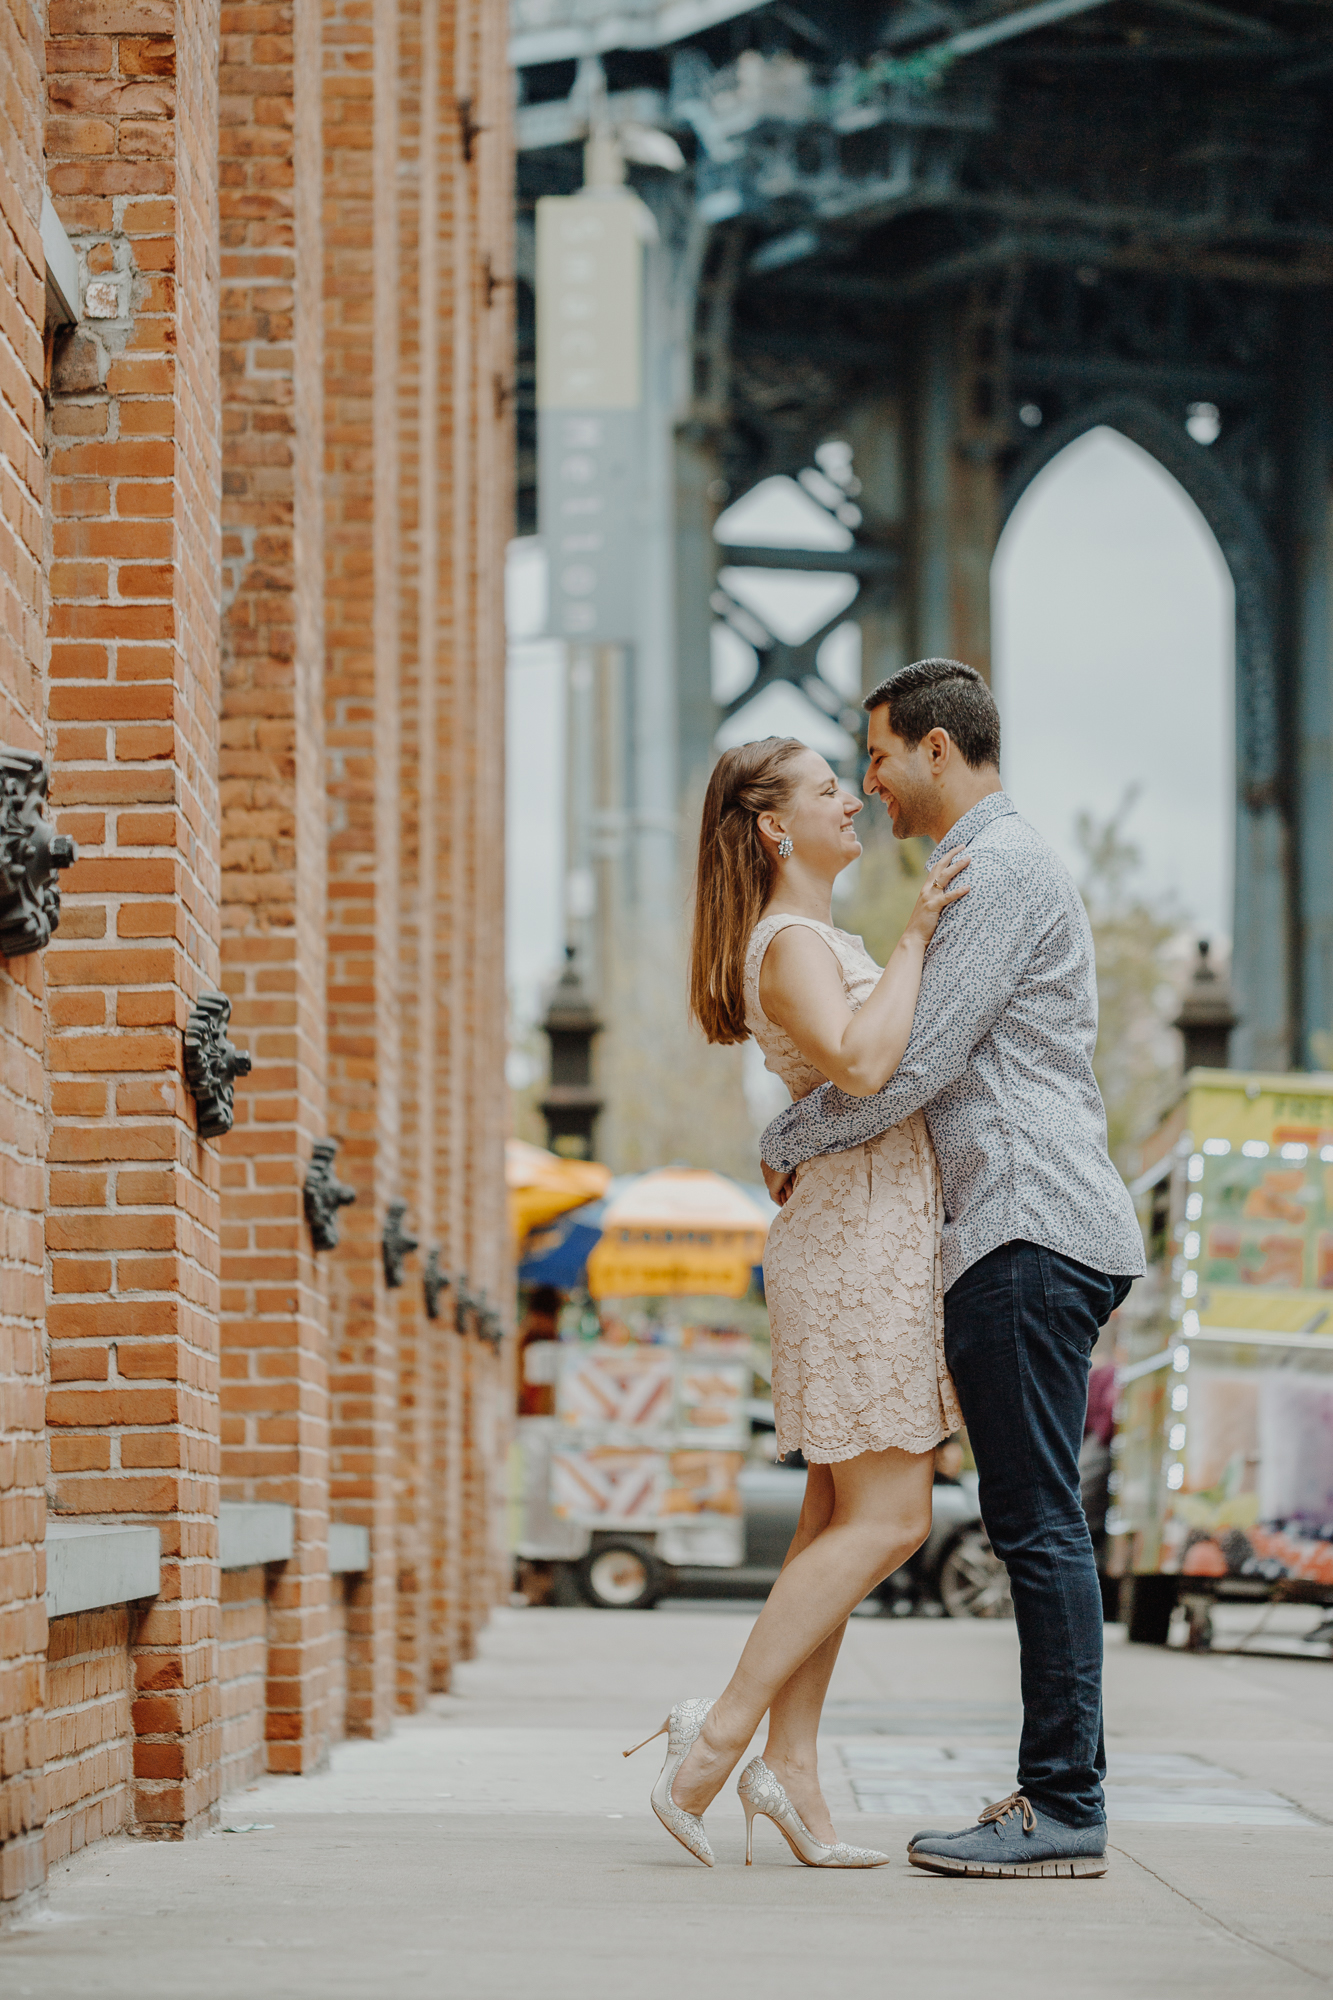 Couples photo shoot in Brooklyn